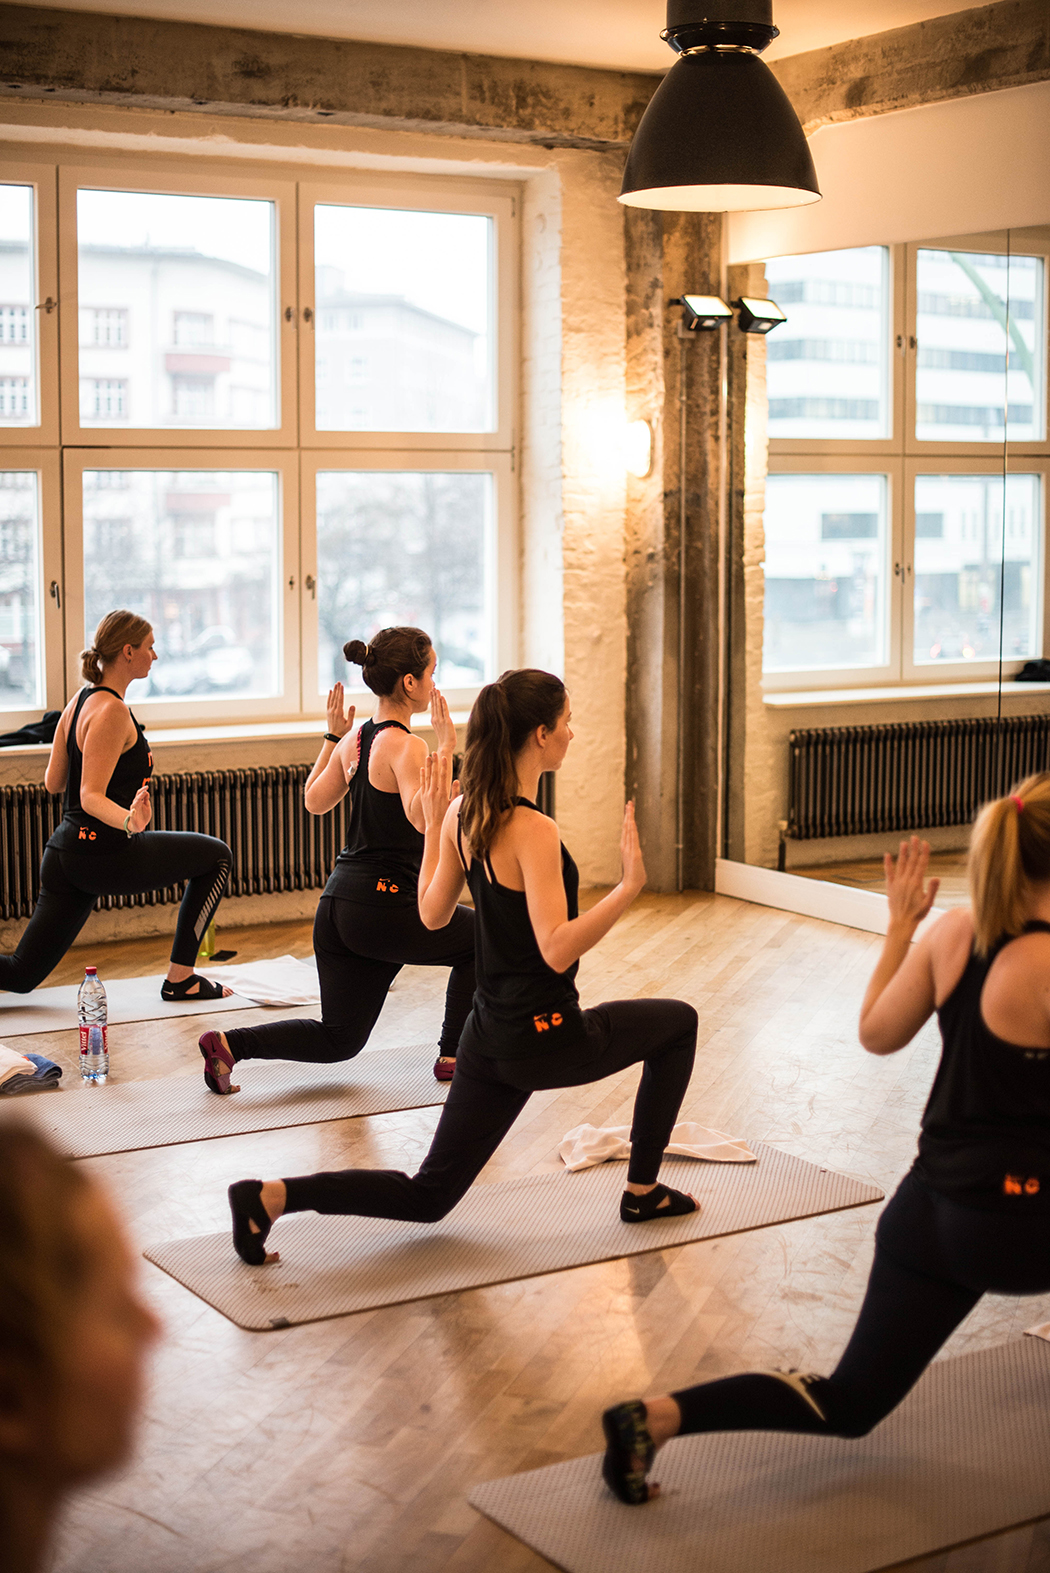 NTC-Yoga-Workout-Soho-Haus-Berlin-Finessblogger-Deutschland-Lindarella-3